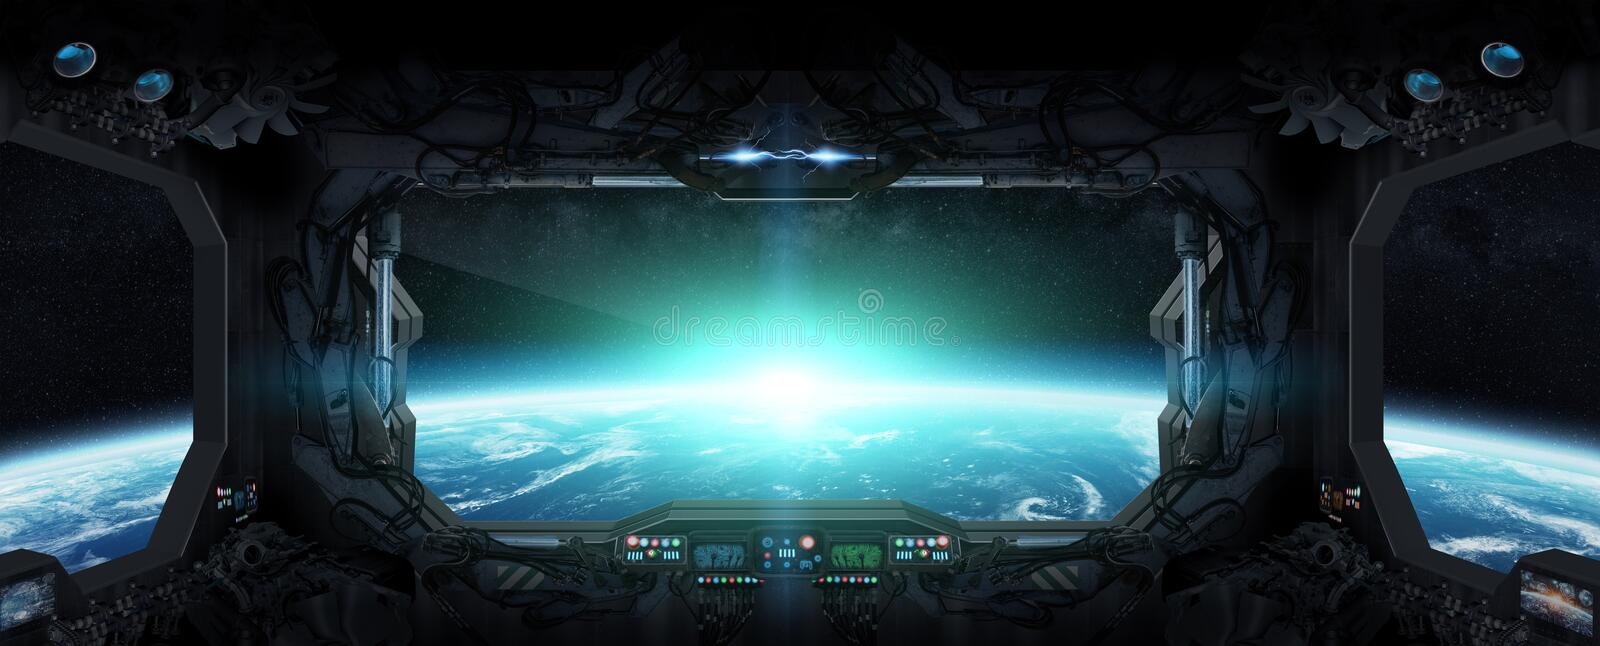 View of planet Earth from inside a space station. Window view of planet earth from a space station stock illustration